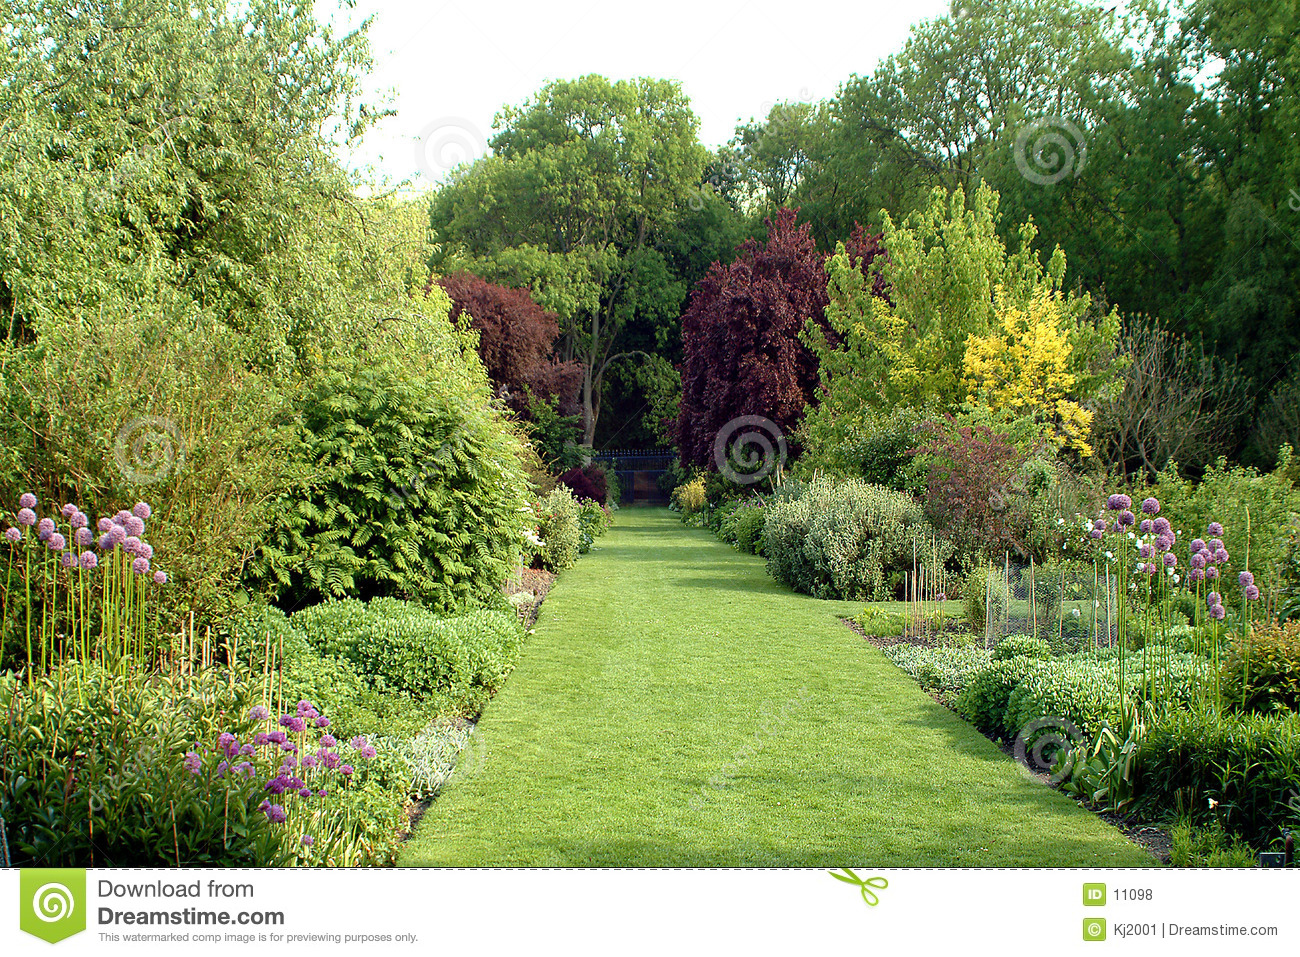 Jardin anglais de pays photos libres de droits image 11098 for Photos de jardins anglais